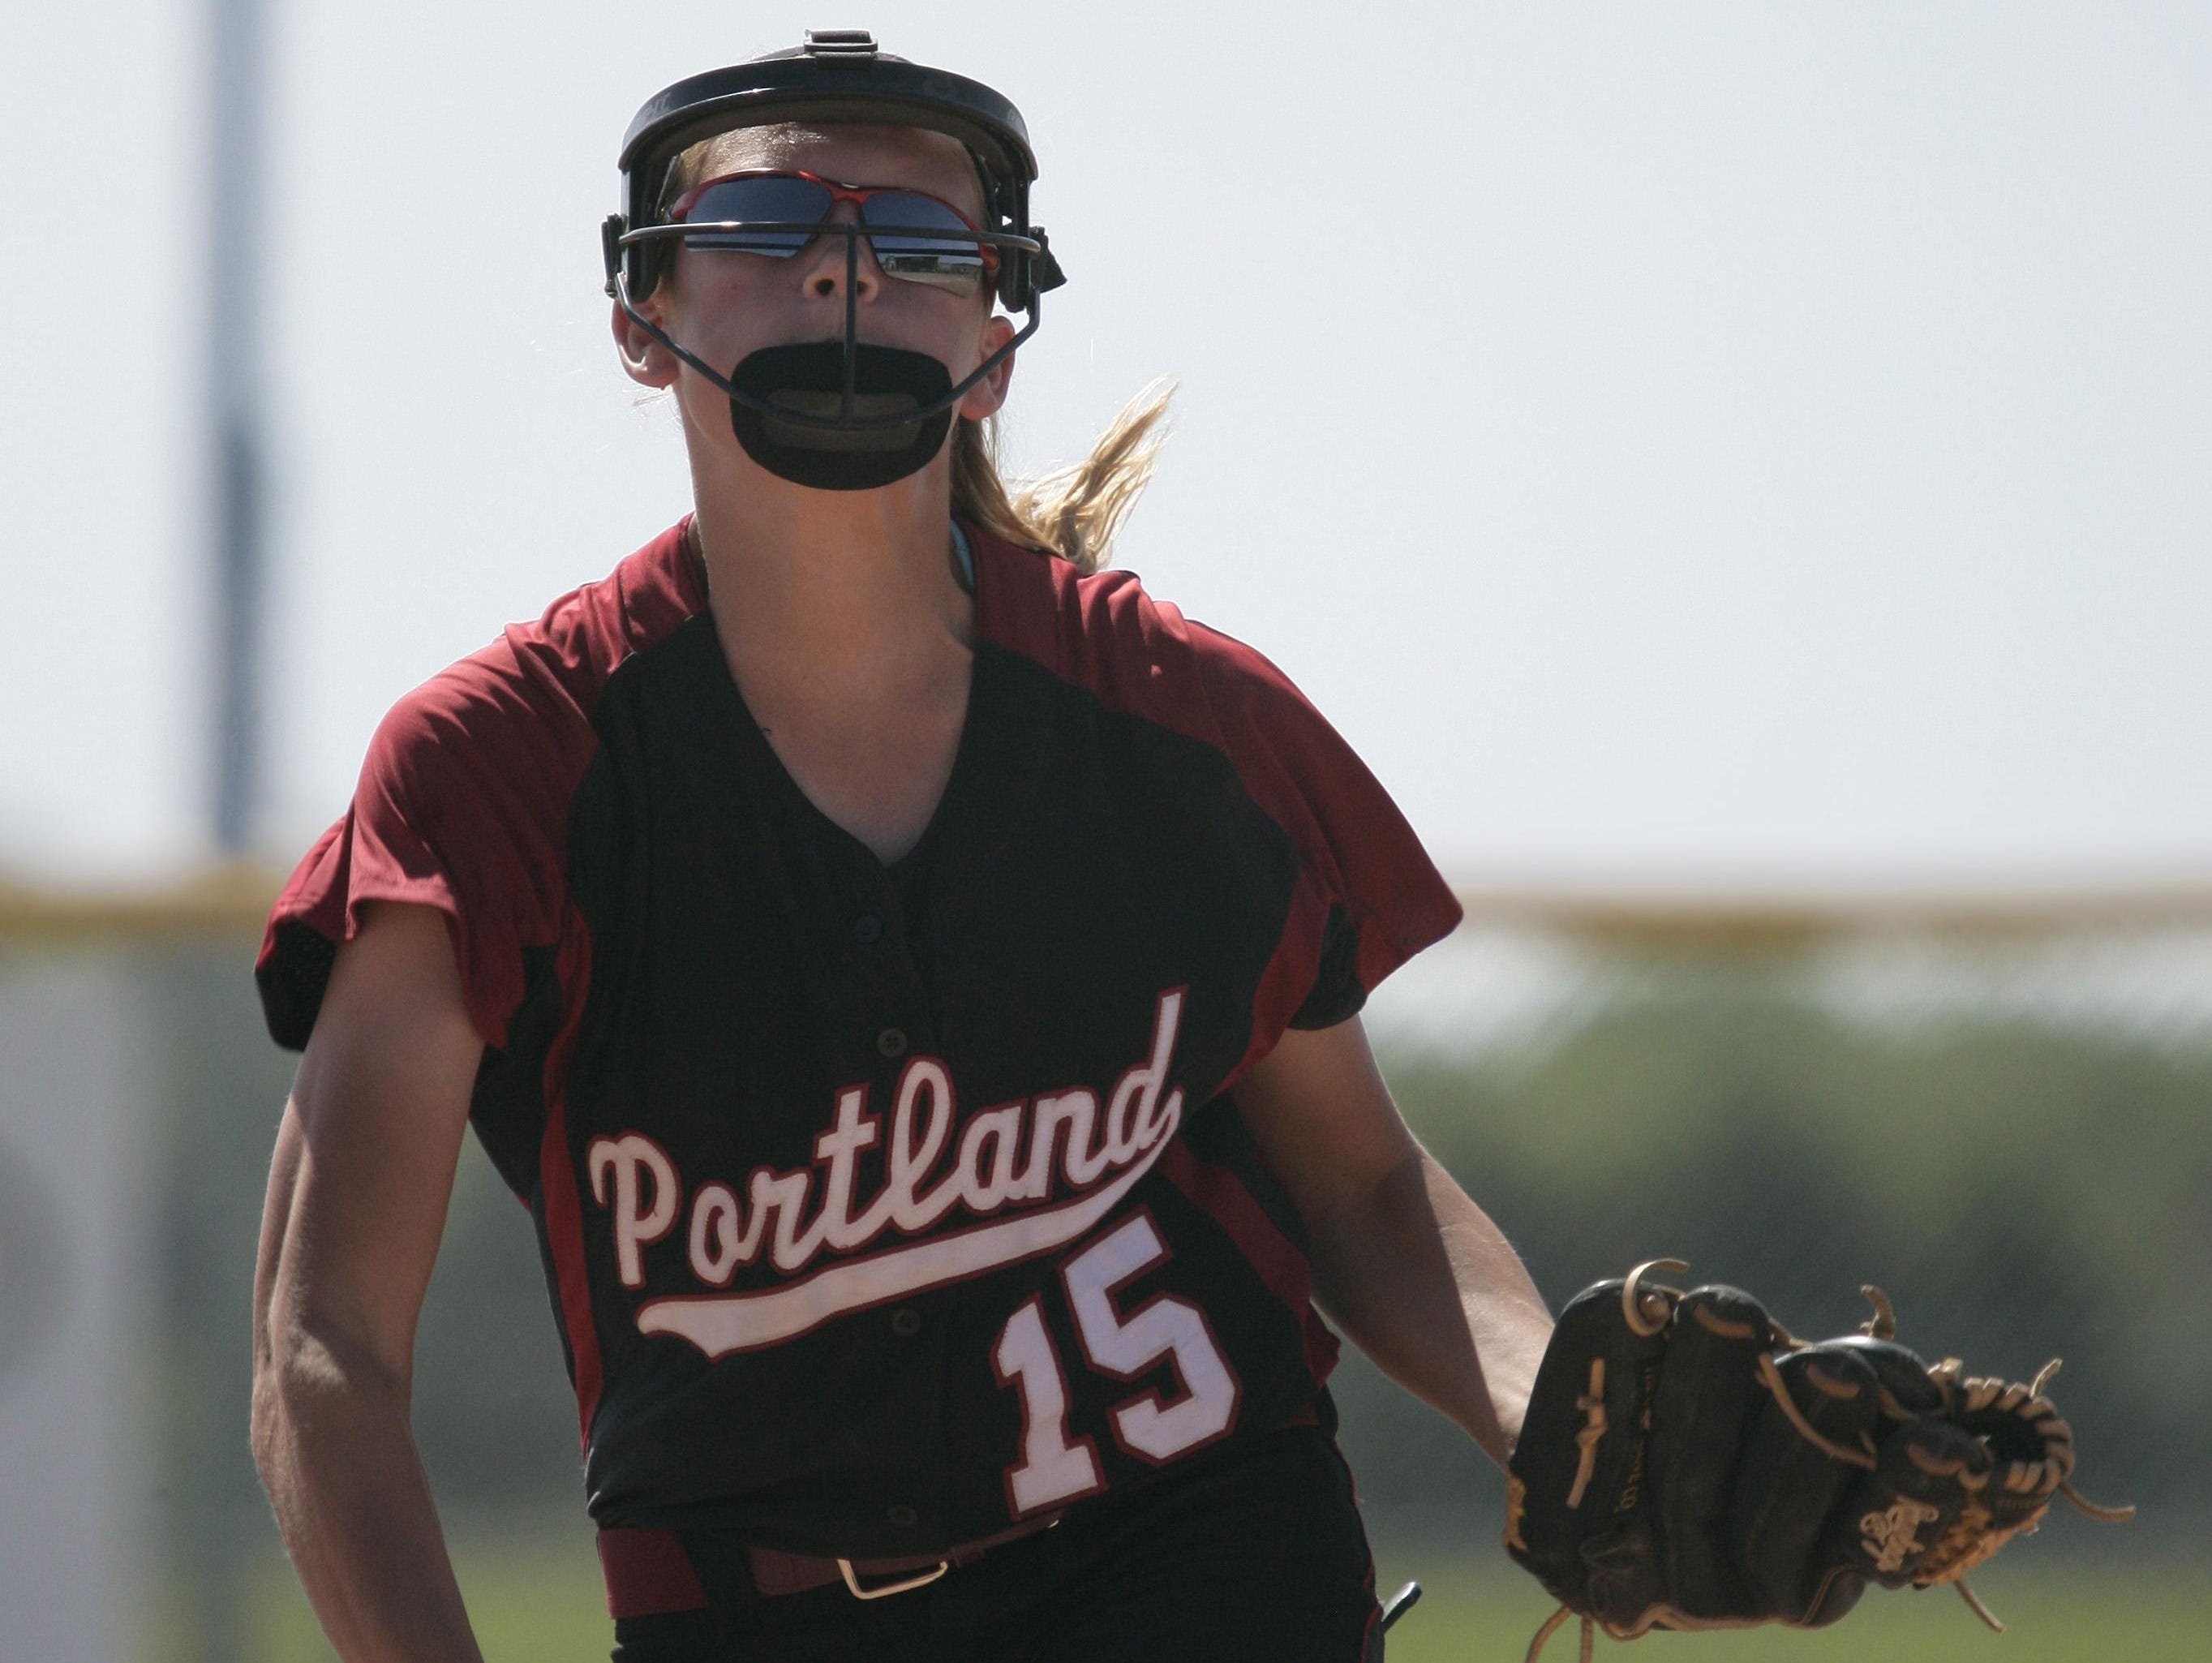 Freshman Abby Grys won 11 games in the circle during the regular season for Portland, which will face Carleton Airport in a Division 2 quarterfinal.